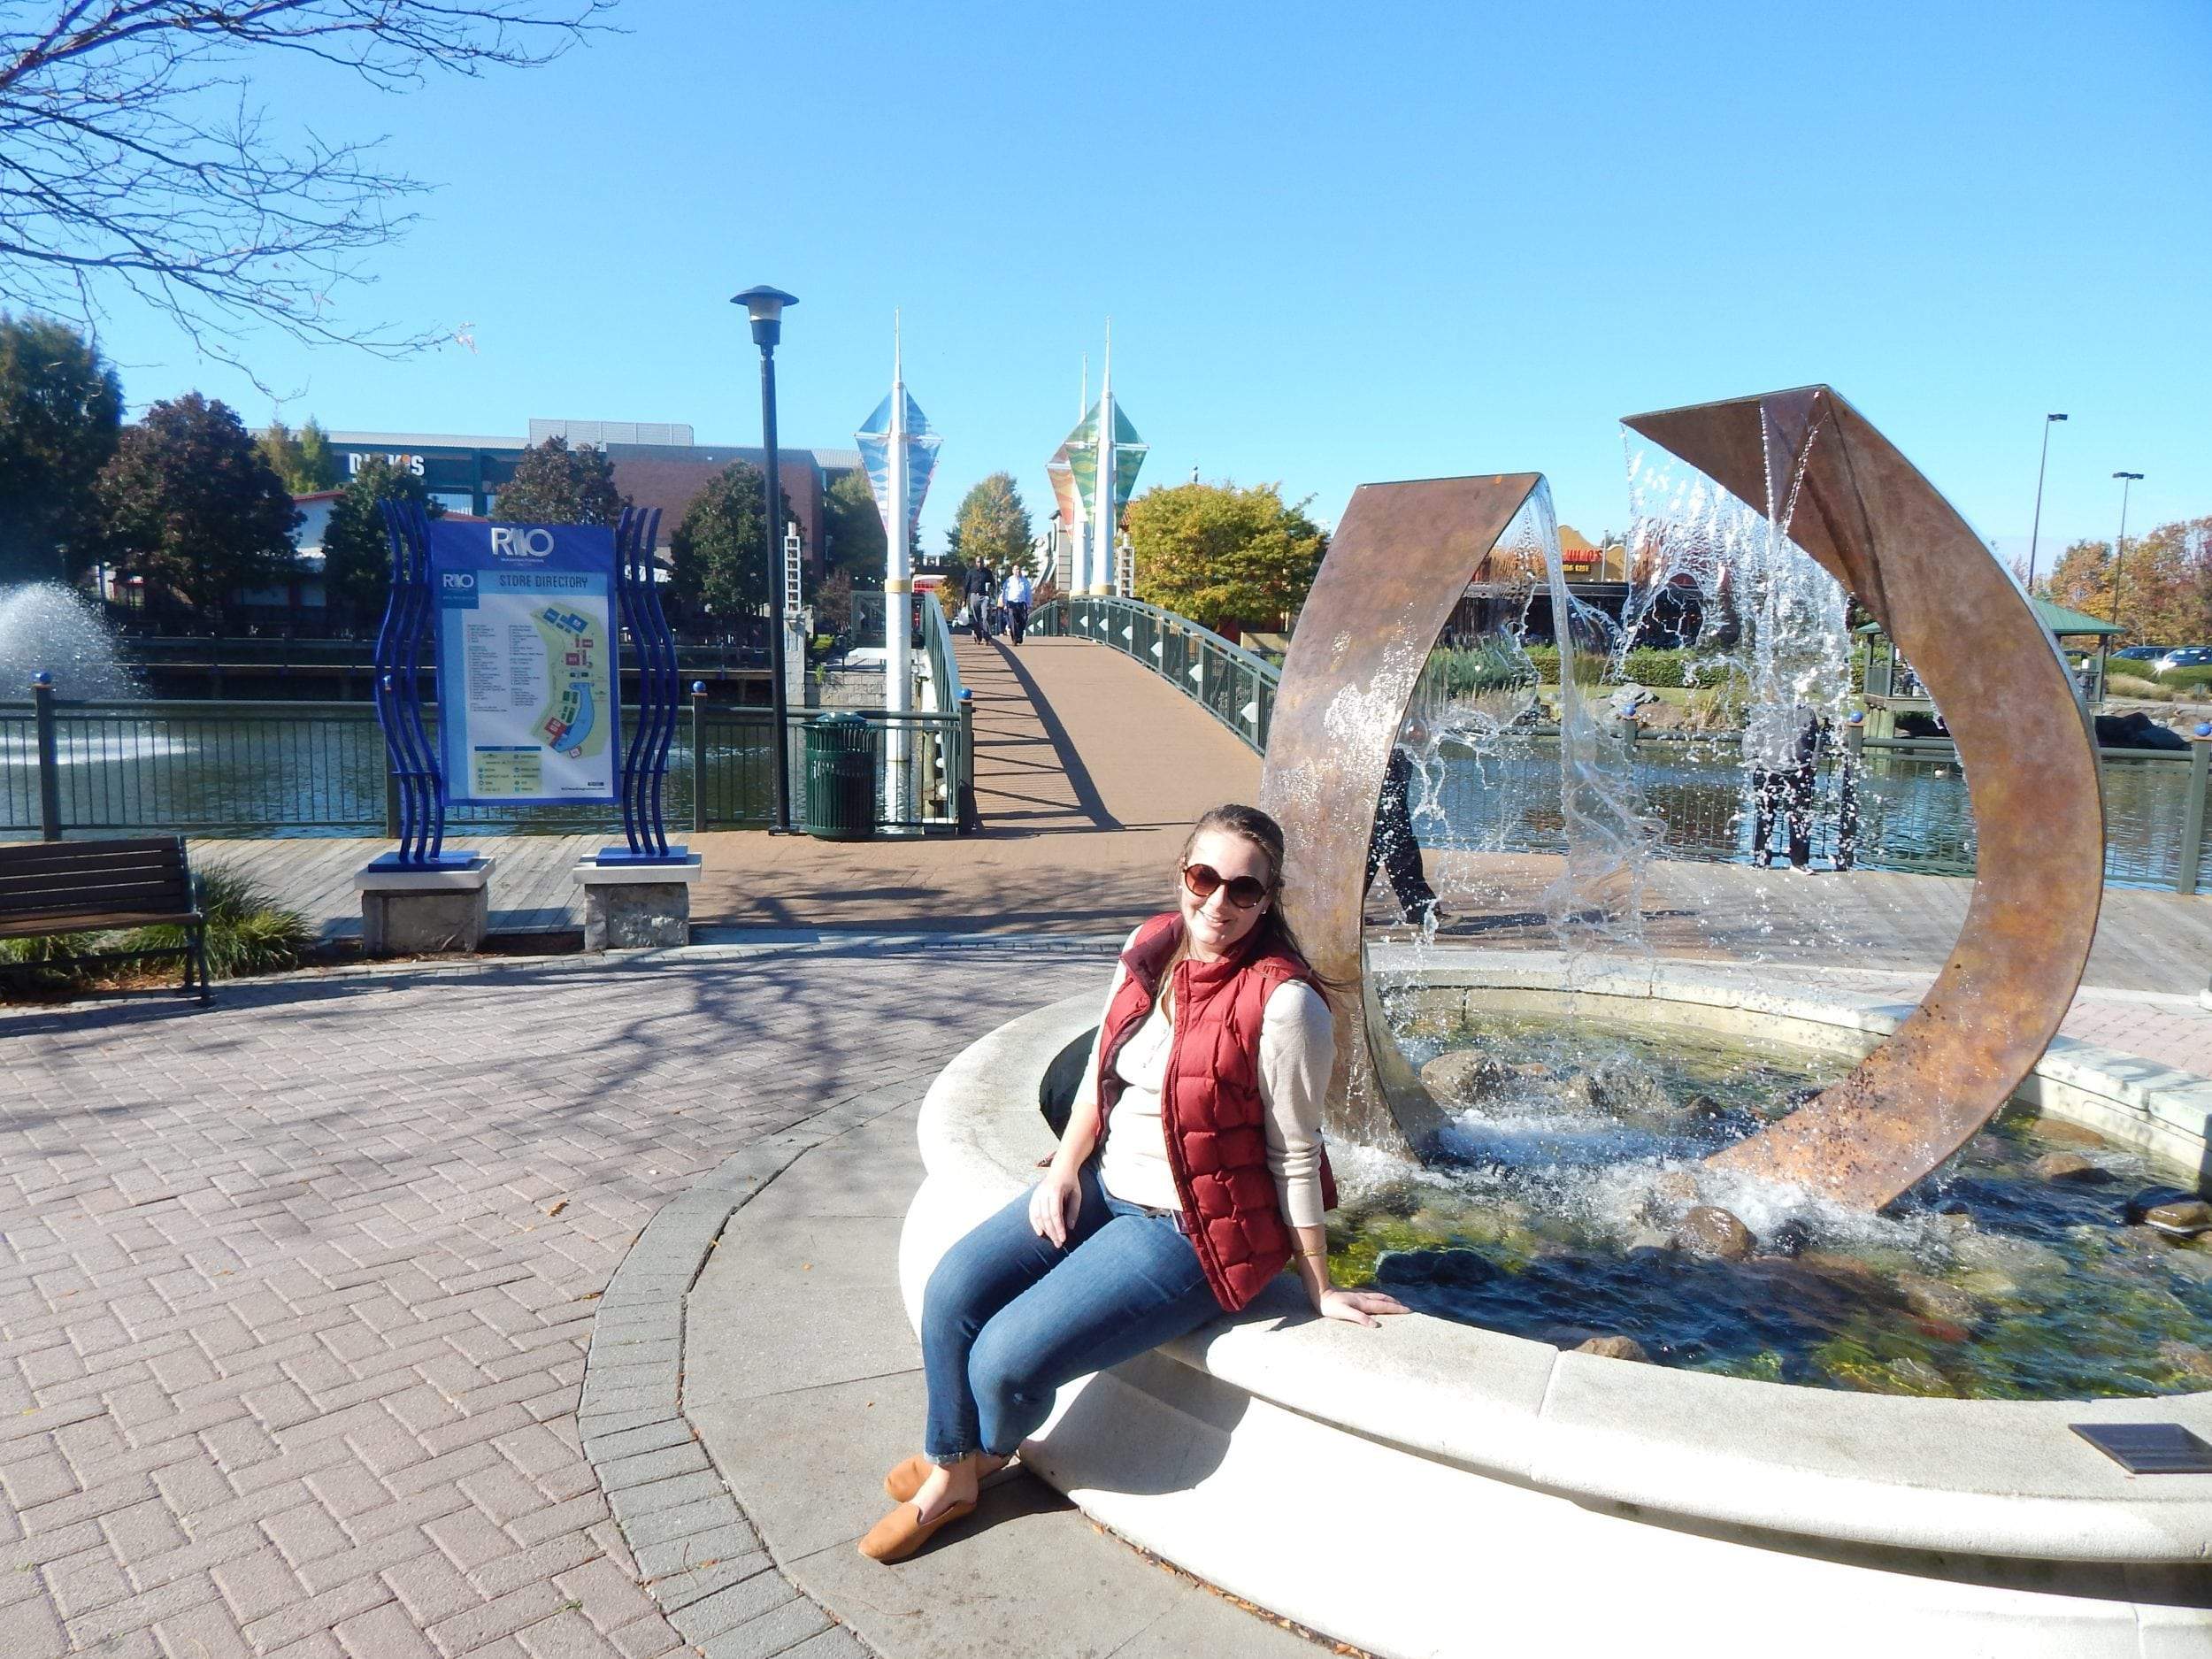 7 places to check out the next time you re in gaithersburg md